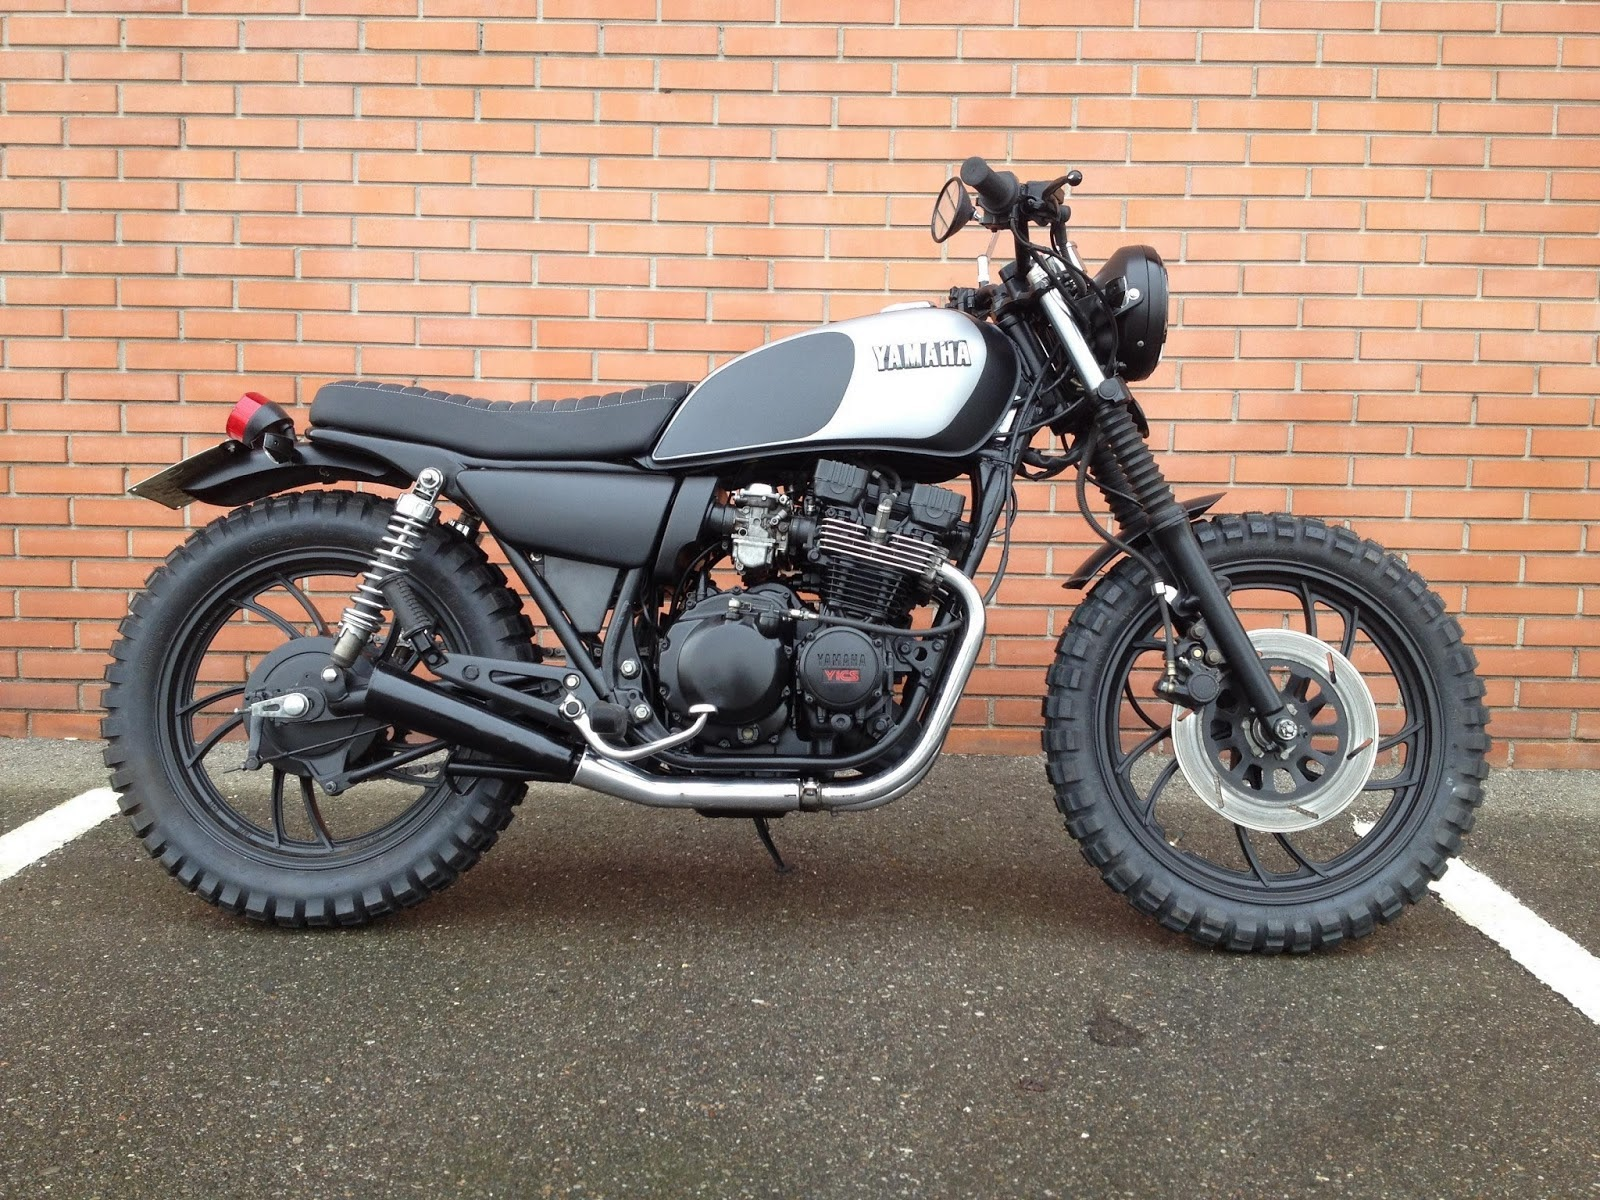 Yamaha Fj 1100 Specs Wiring Diagrams also File 1980 Yamaha XJ650 Maxim I side besides Viewtopic as well X650 Storm further 1982 Yamaha Xj750 Maxim 258021. on yamaha xj750 maxim